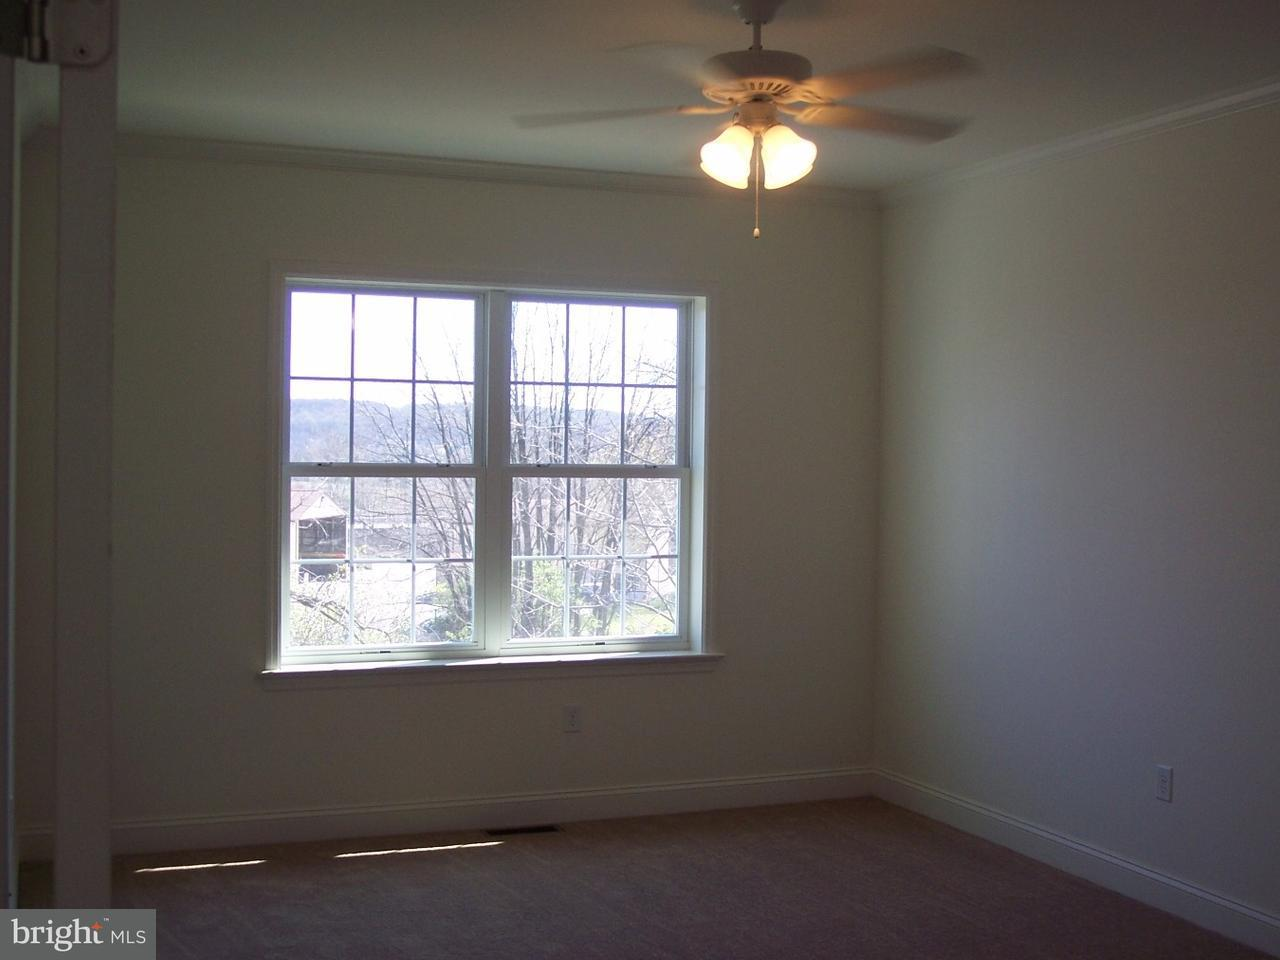 Additional photo for property listing at 1341 S RED MAPLE WAY #58  Downingtown, Pennsylvania 19335 United States